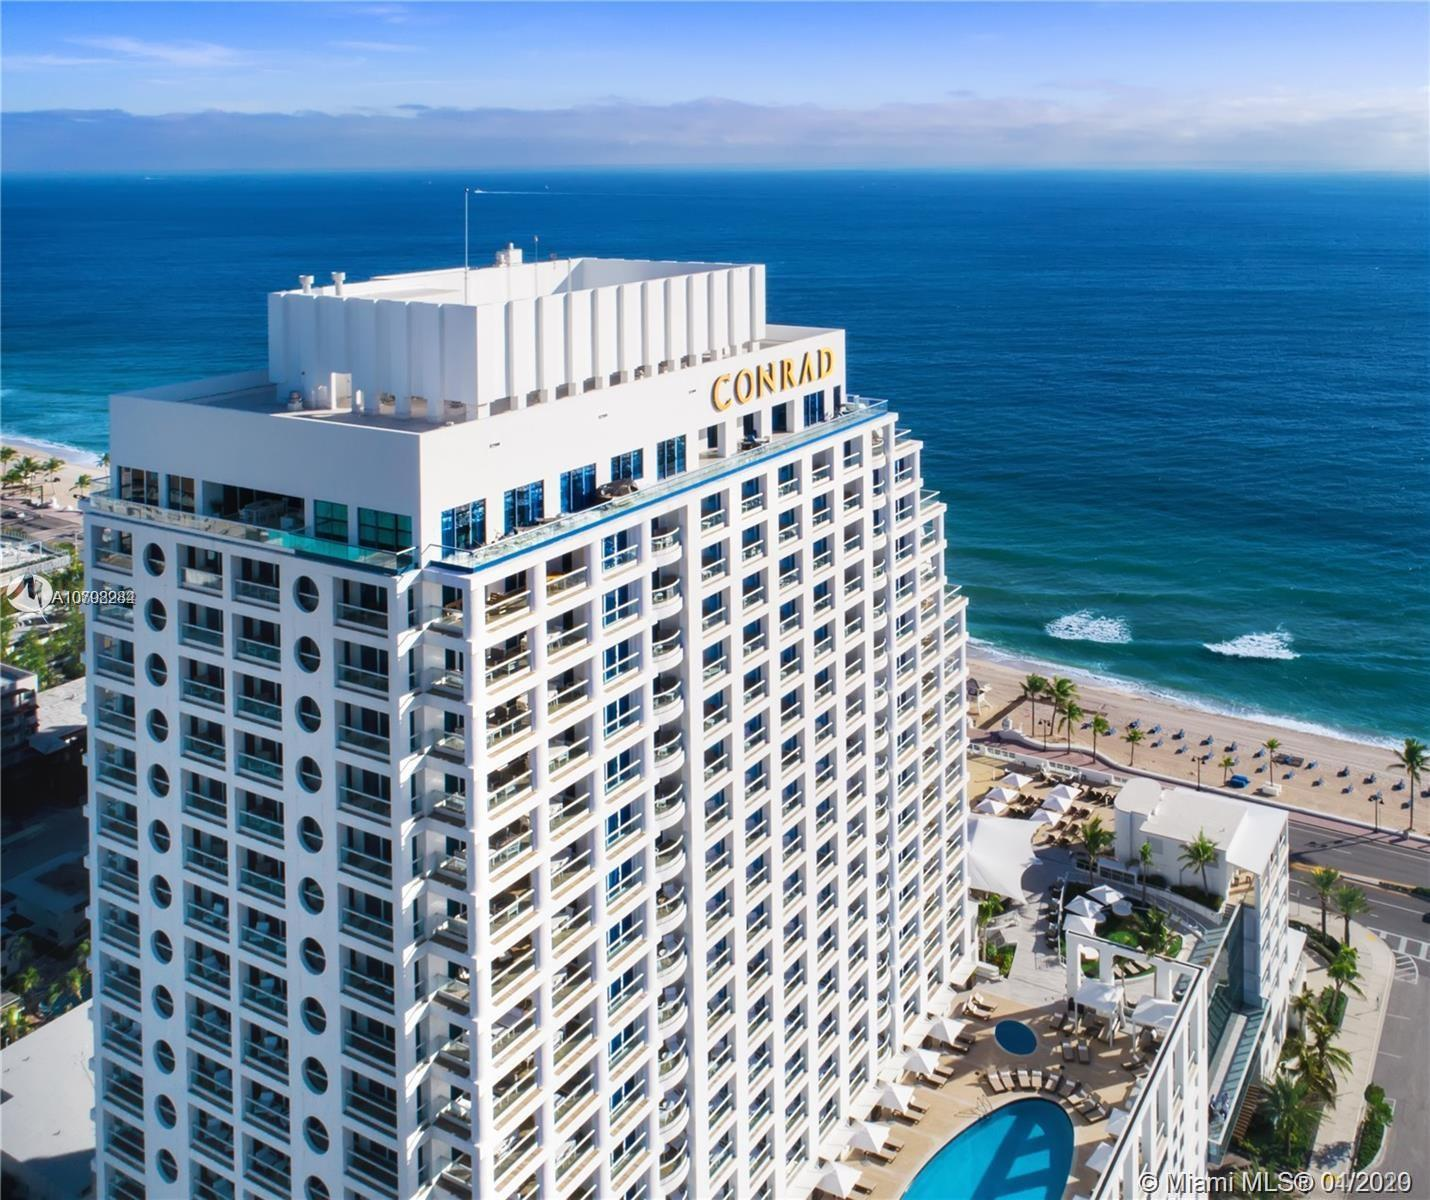 Enjoy The Ocean Residences-Conrad Resort Ft Lauderdale. PRICED TO SELL. Impeccable residence, turnke